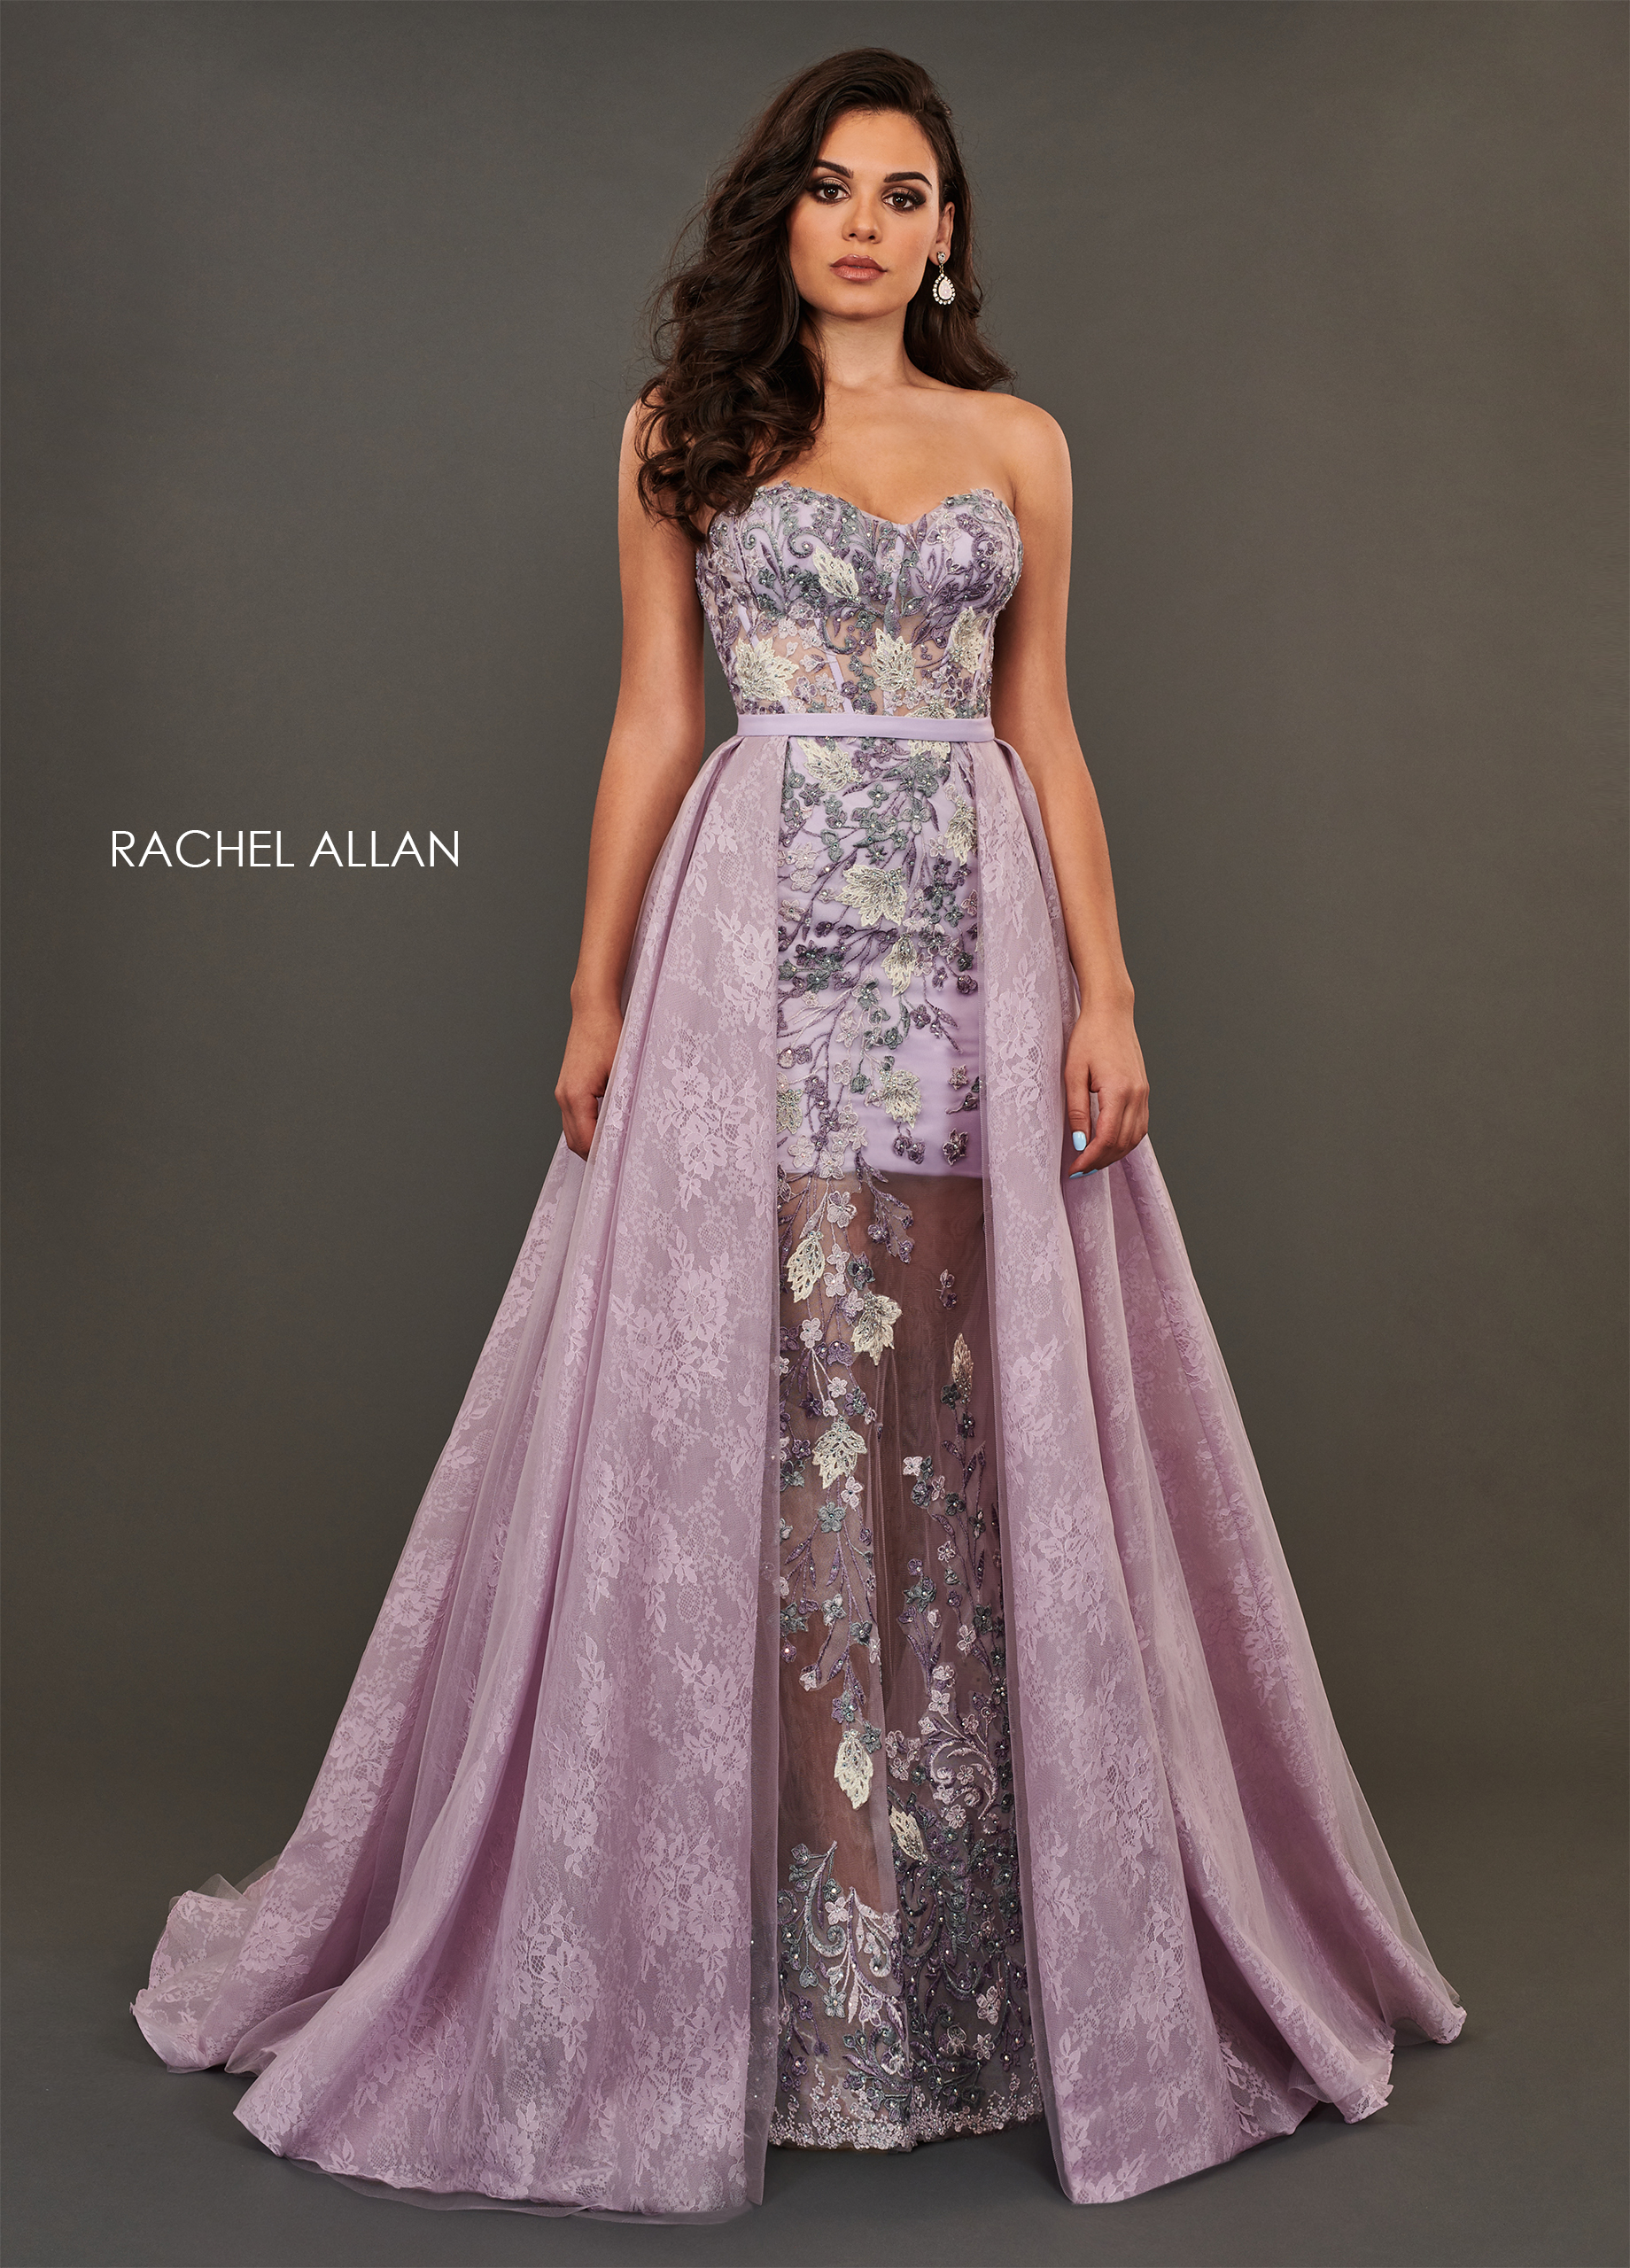 Sweetheart Skirt With Overlay Couture Dresses in Purple Color